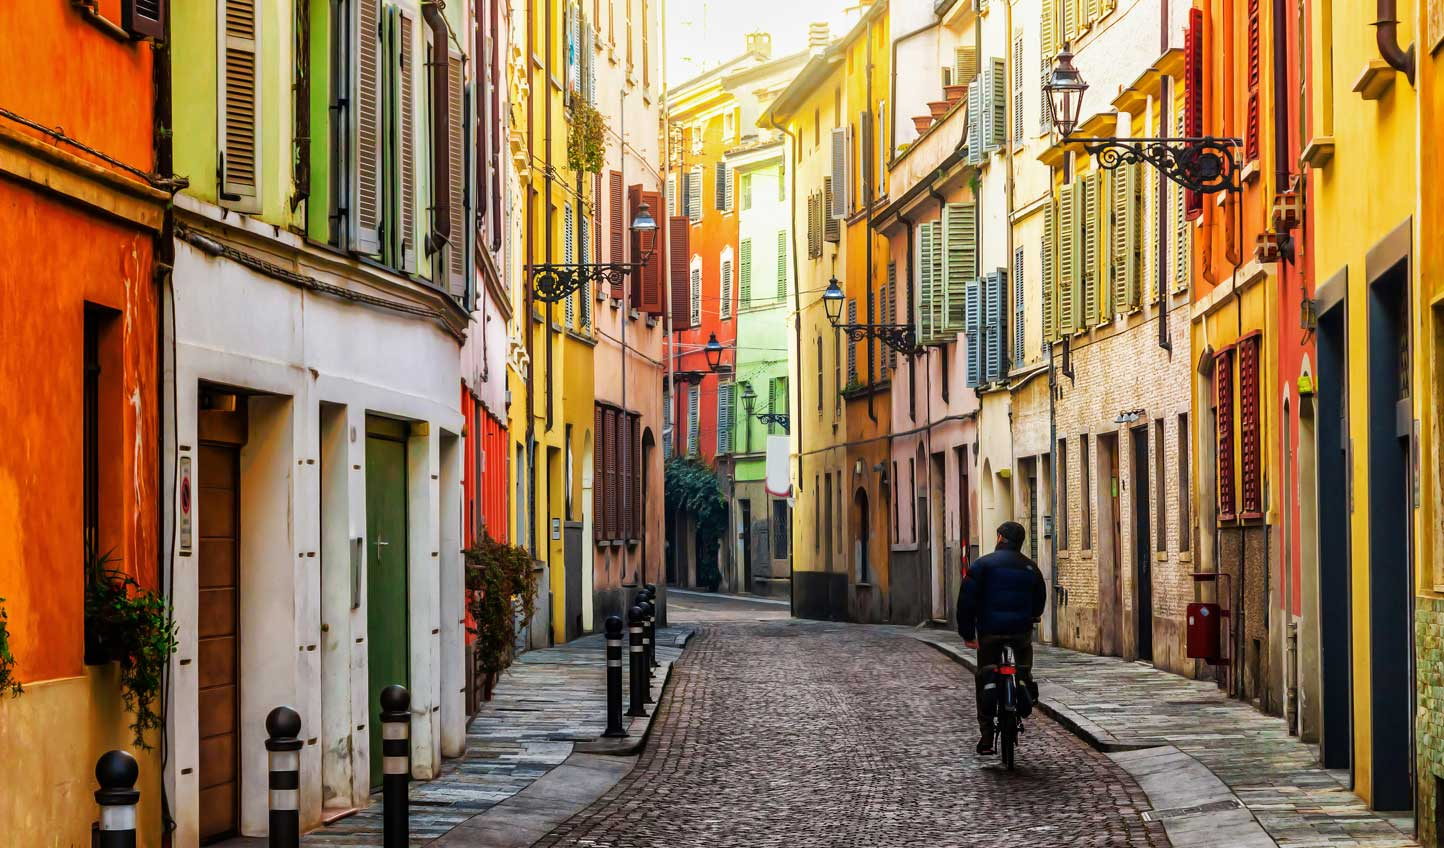 Wander through brightly coloured streets in Parma